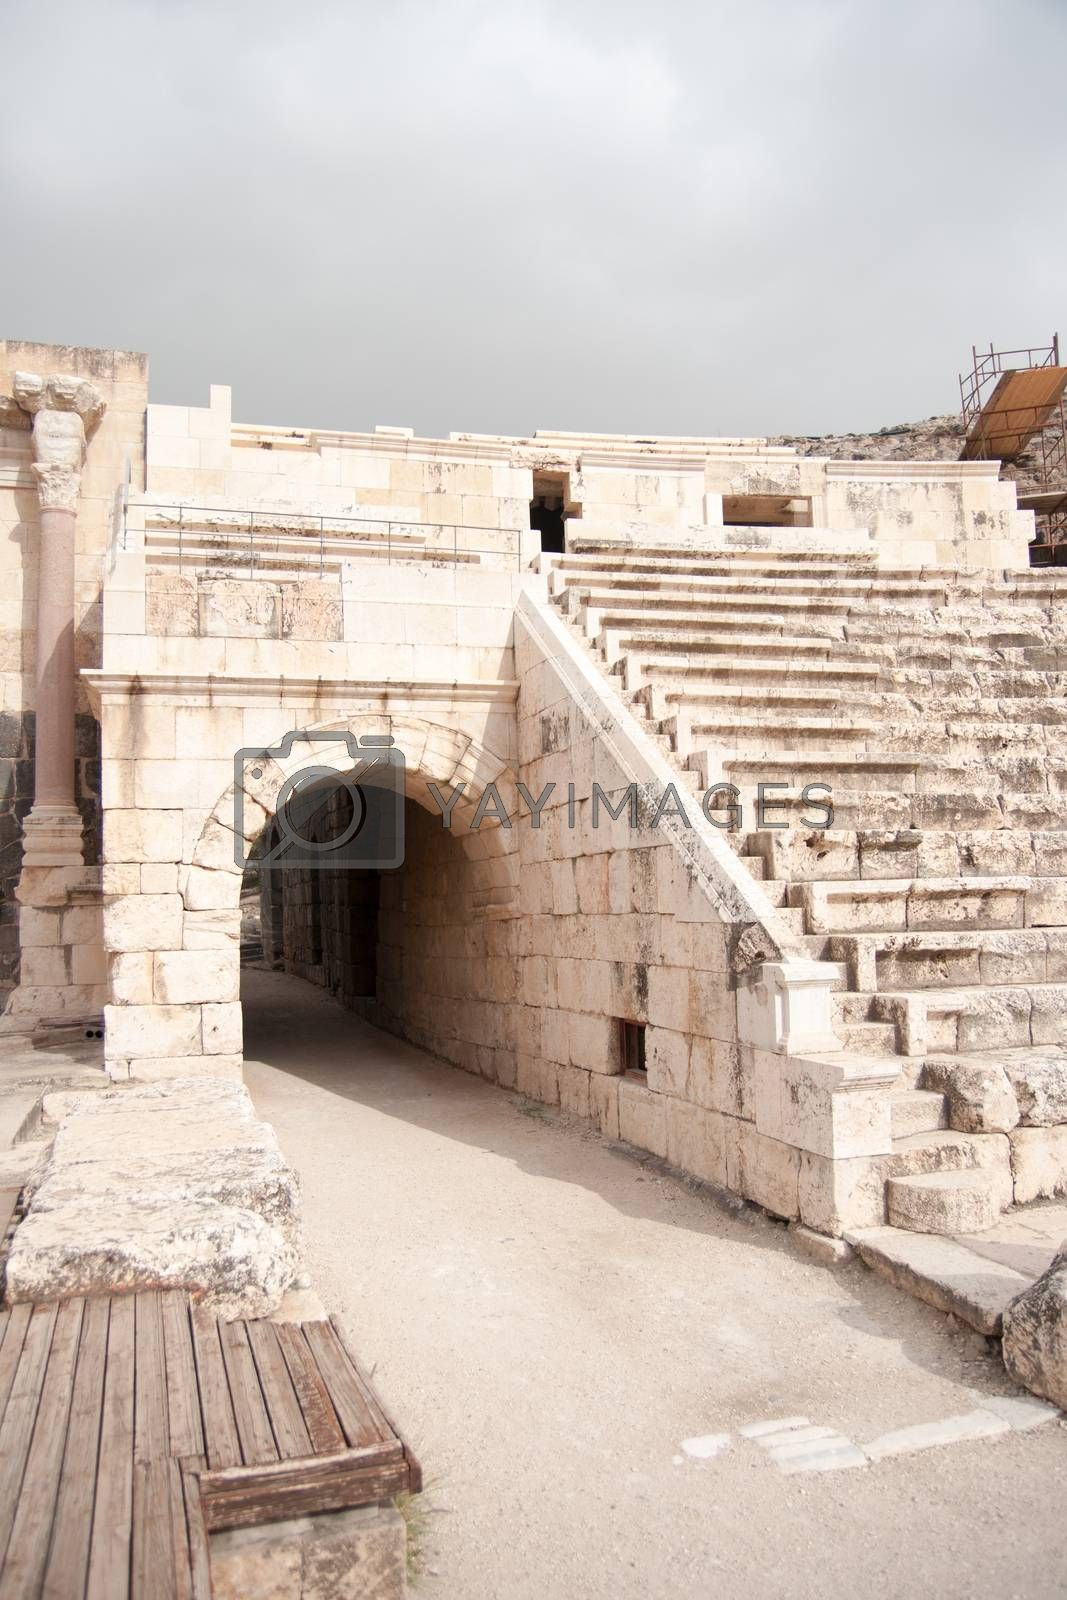 National park with ruins for tourists attraction